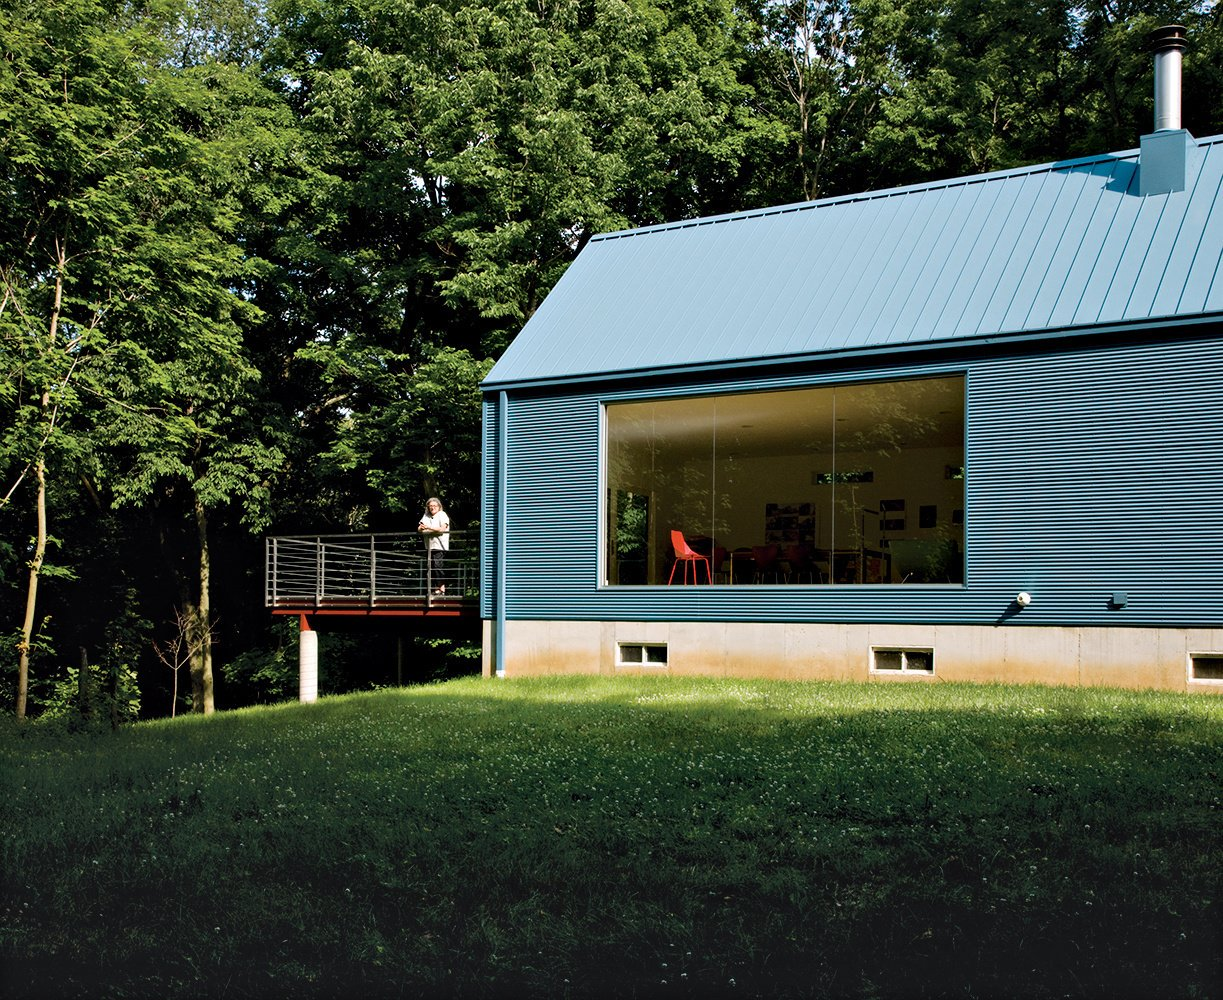 Lauren Ewing's stylish, but unassuming shotgun-style house in Vincennes, Indiana, is set into a hill overlooking a field she has known since childhood. Read more about this home made of local materials here.  20 Best Modern Homes from the Midwest by Erika Heet from One With Nature